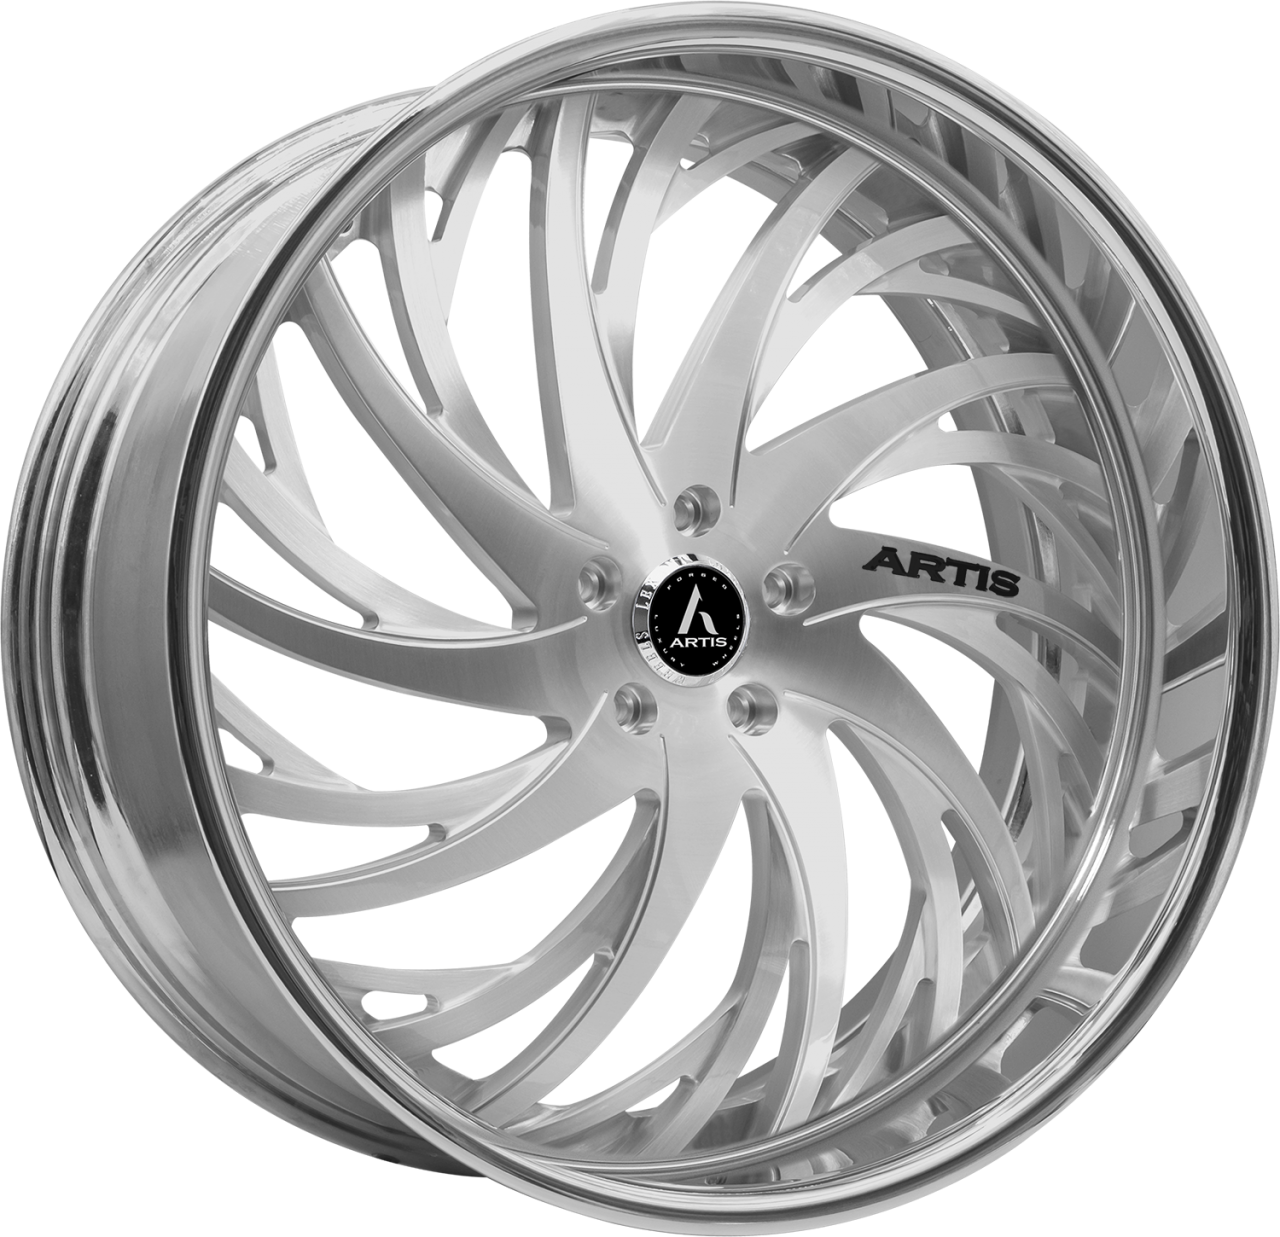 Artis Forged Decatur-M wheel with Brushed finish